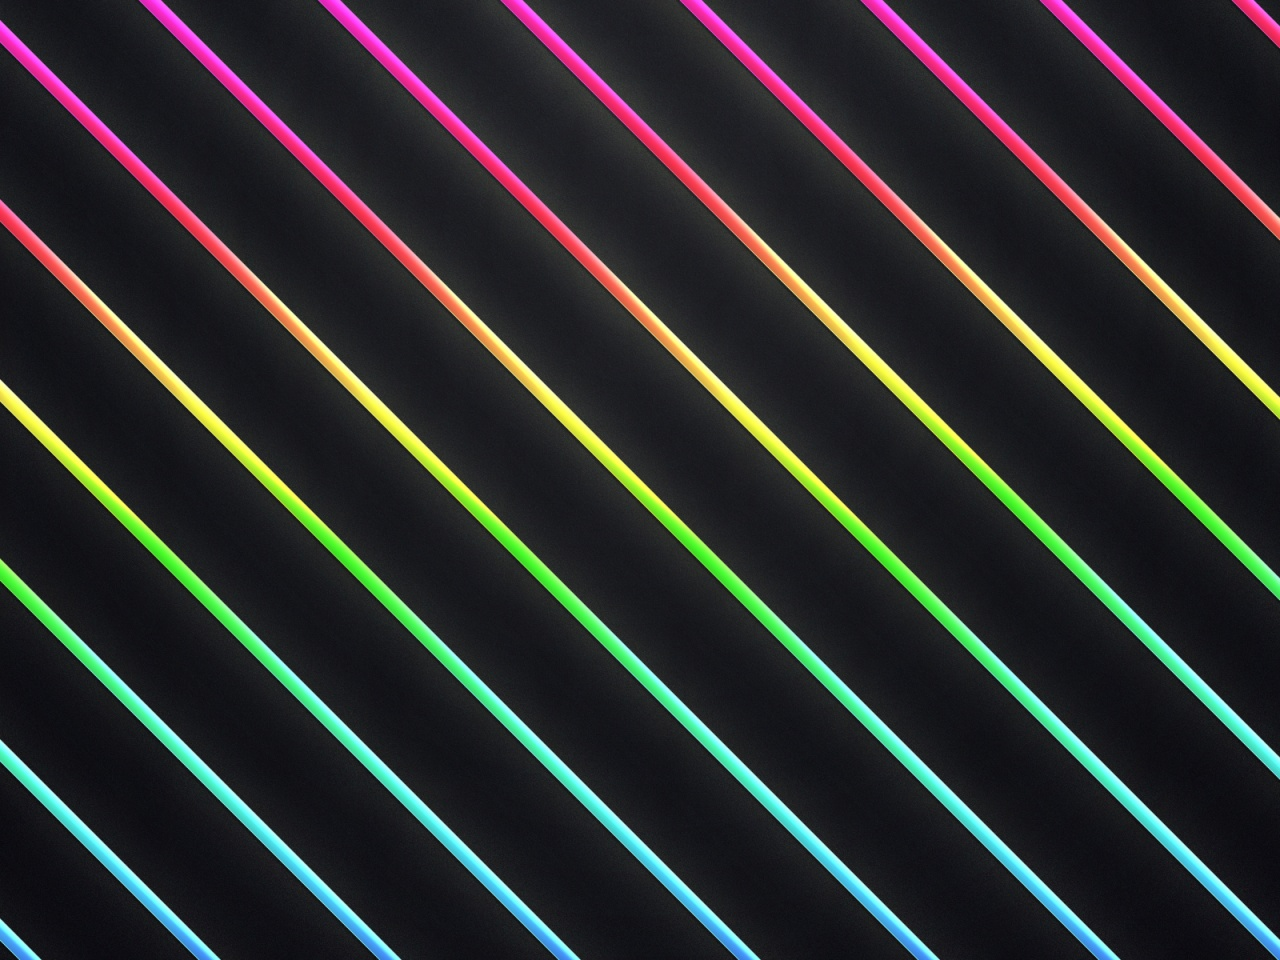 1280x960 neon diagonal disco desktop pc and mac wallpaper for 90s wallpaper home